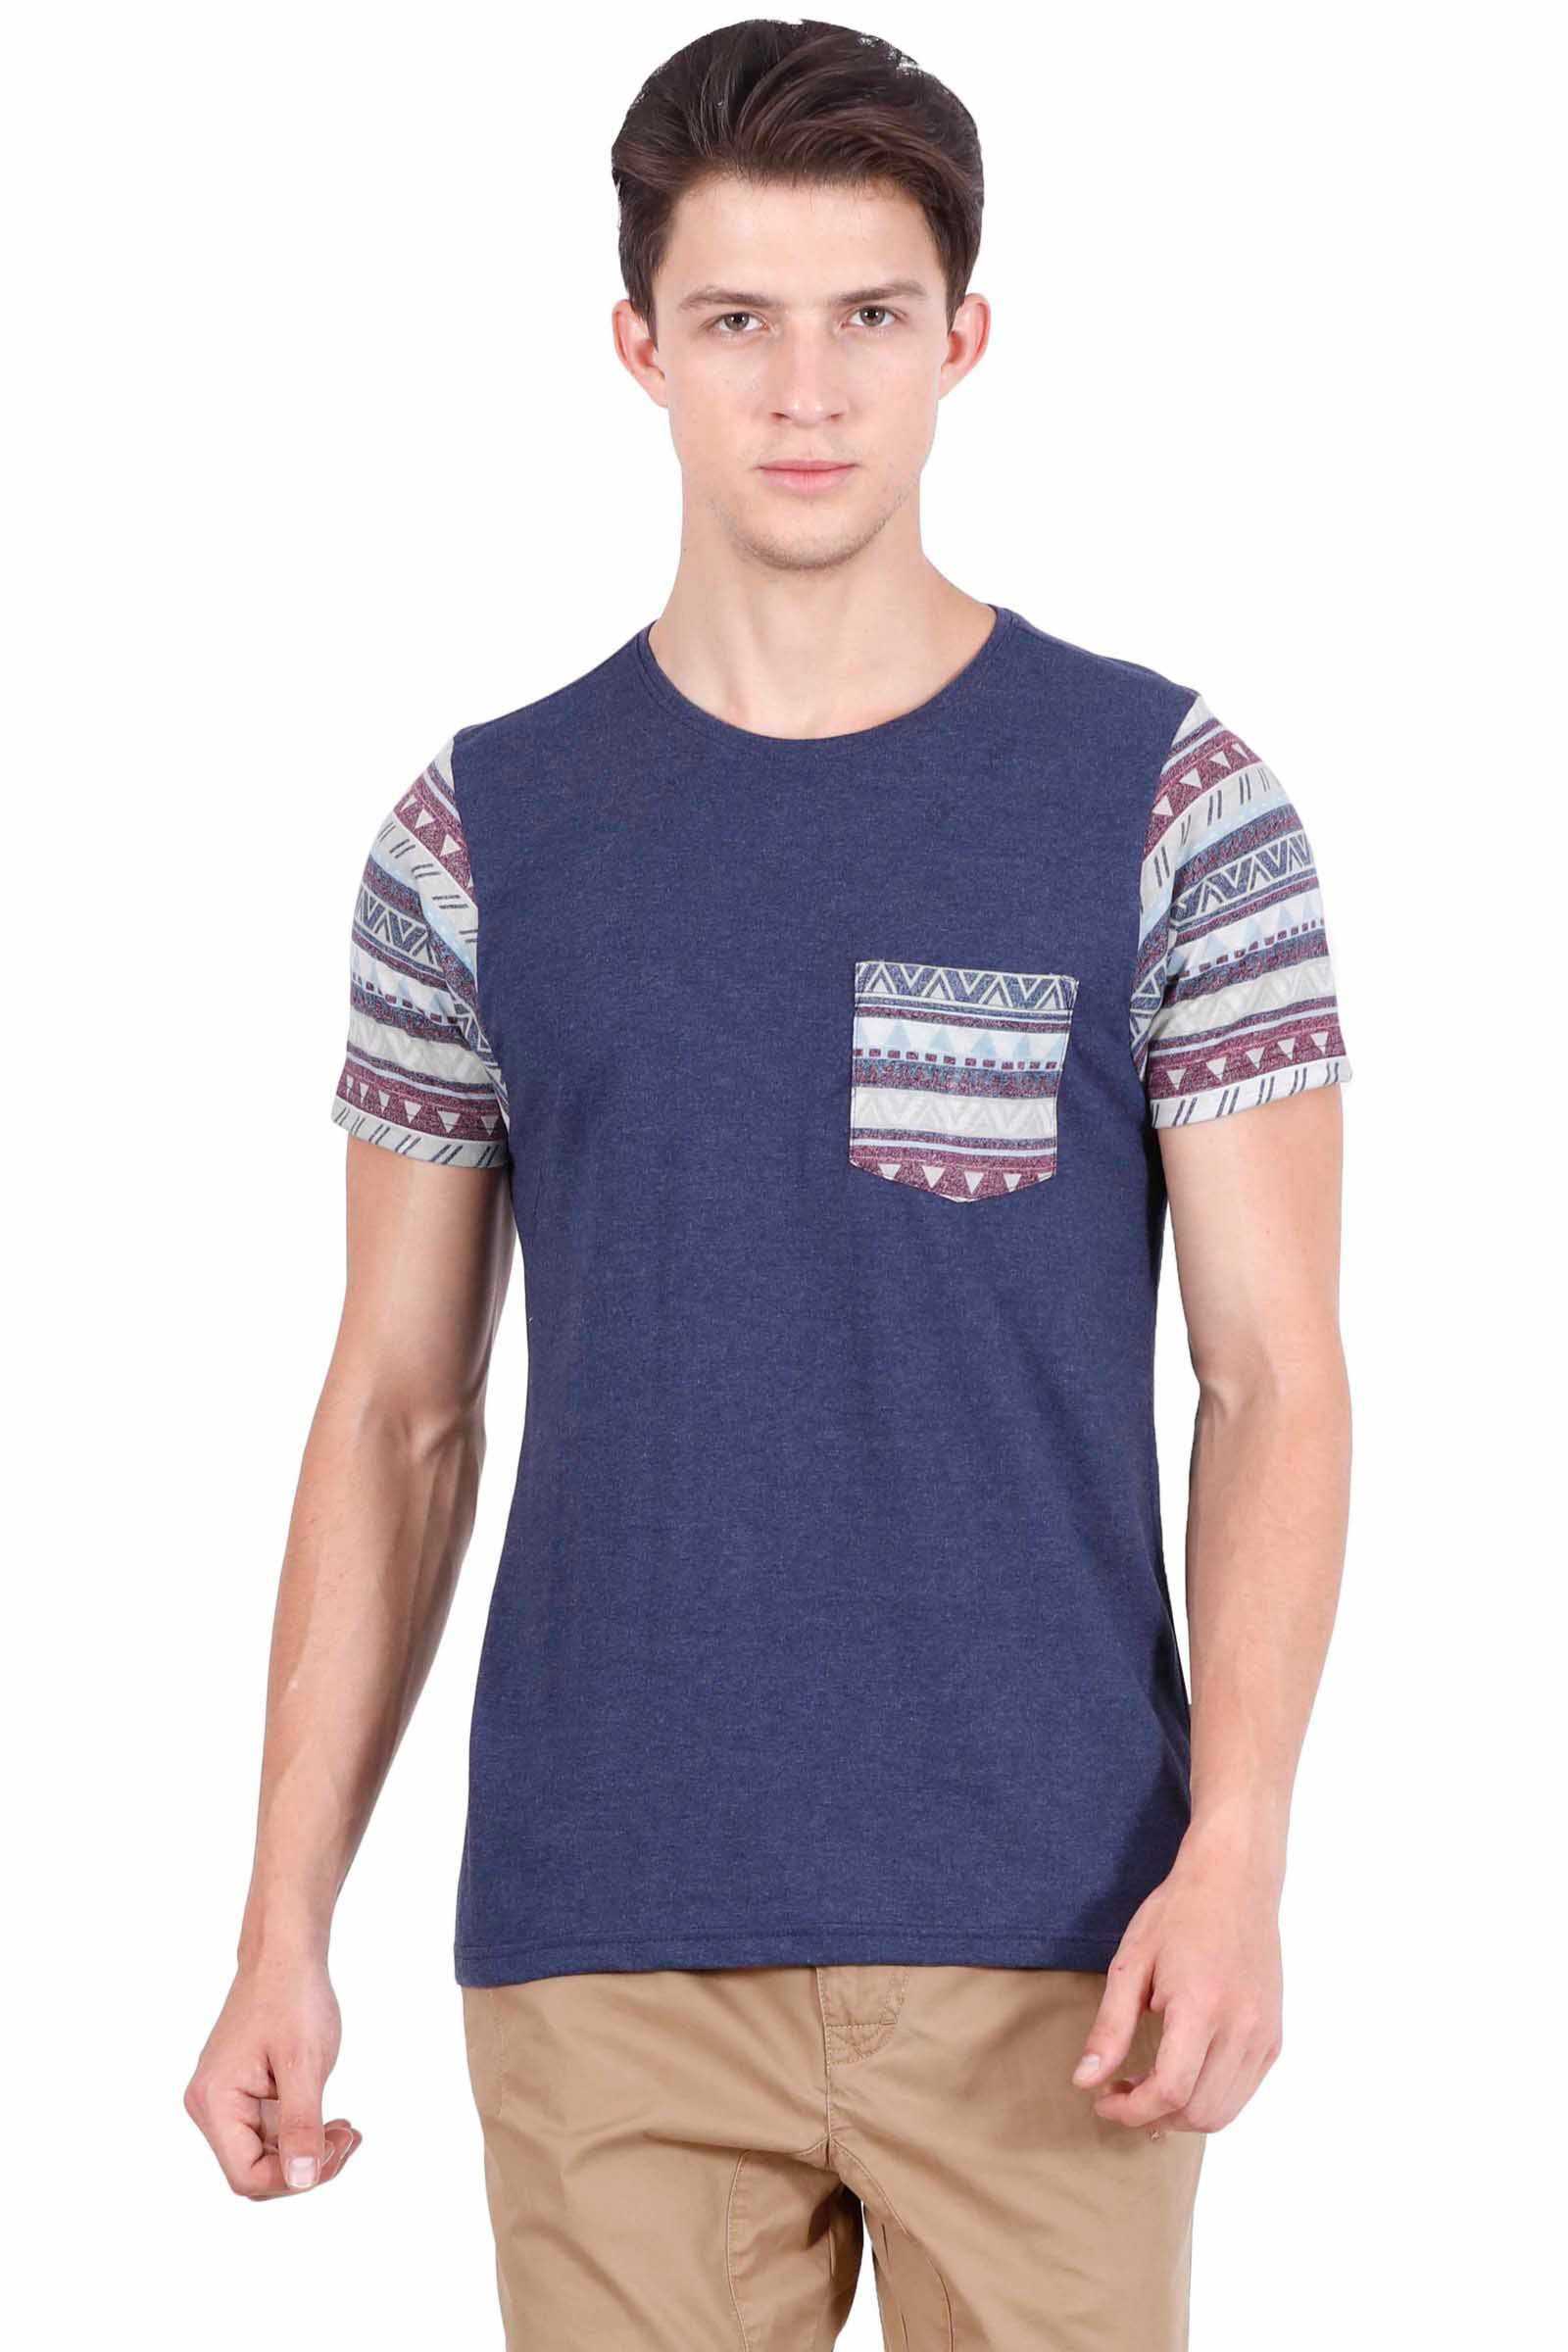 Hunt and Howe Men's Round Neck Short Sleeve T-Shirt